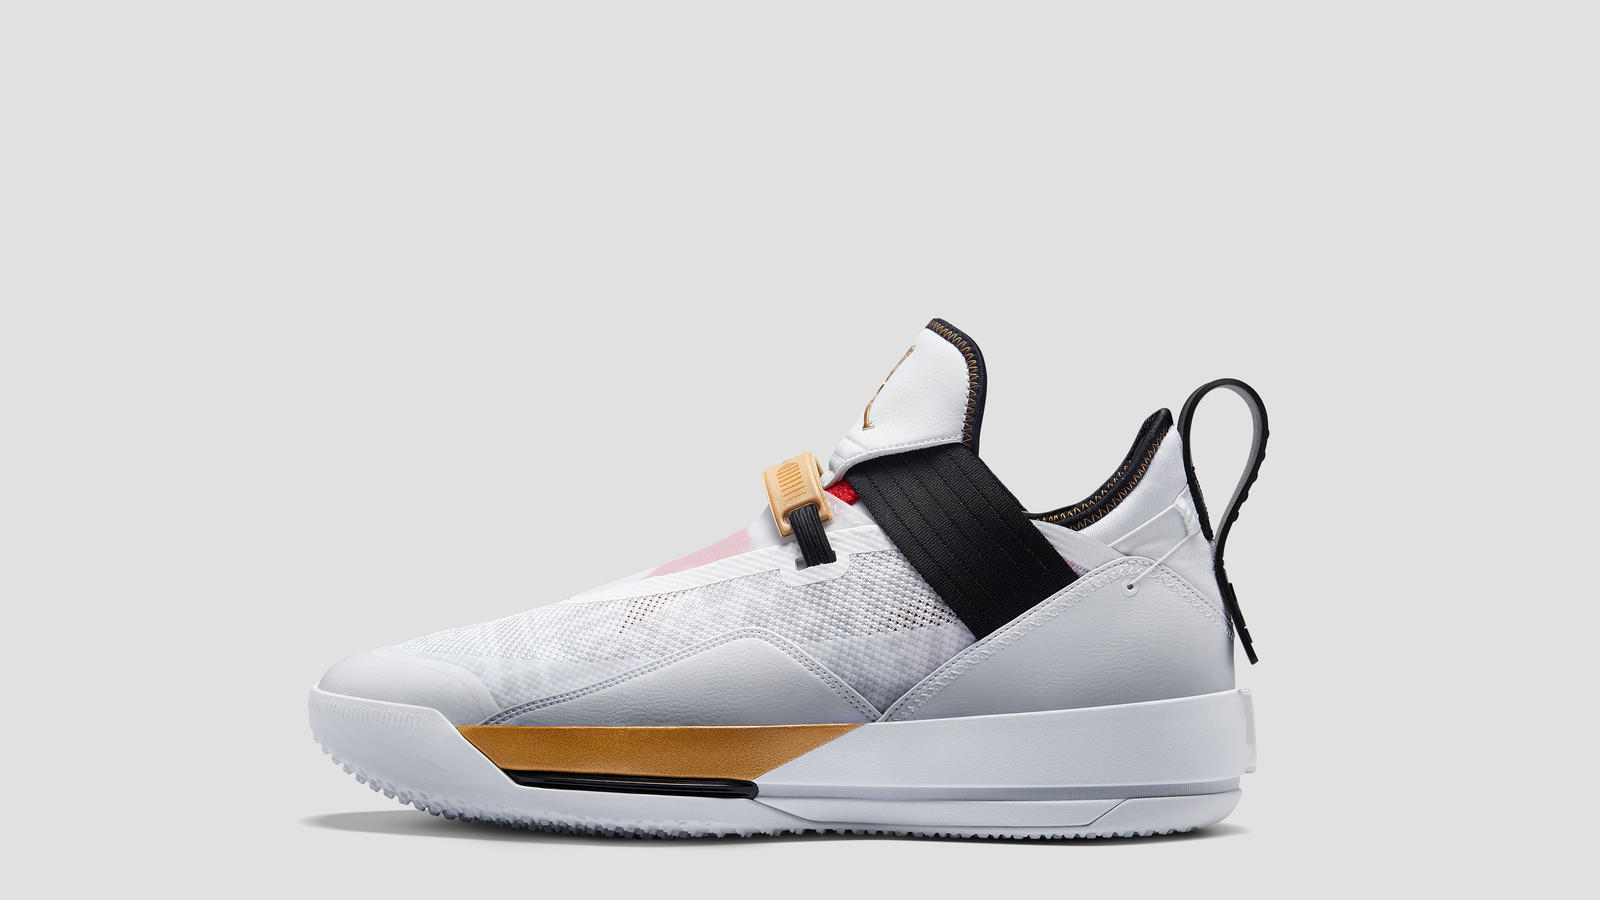 Jordan Brand Fall 2019 FIBA Footwear Collection 1